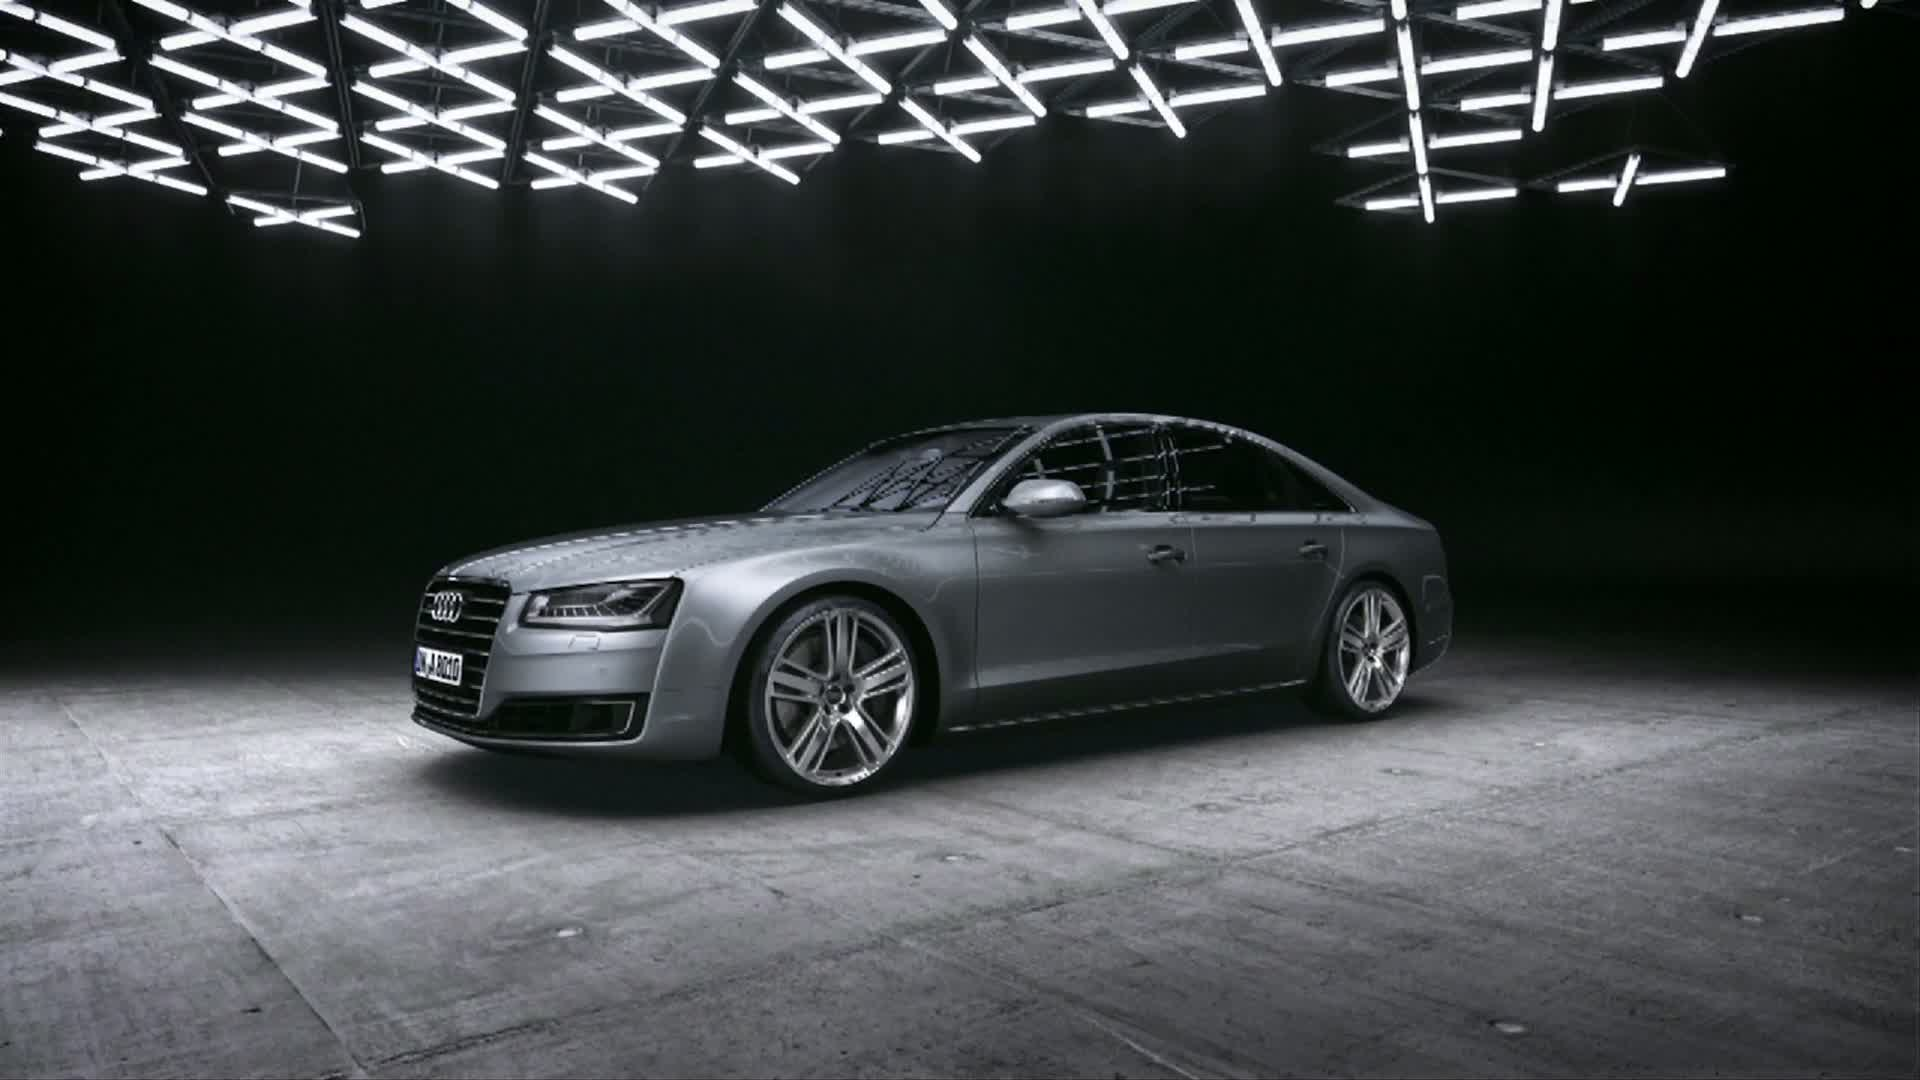 The Audi Space Frame in the new Audi A8